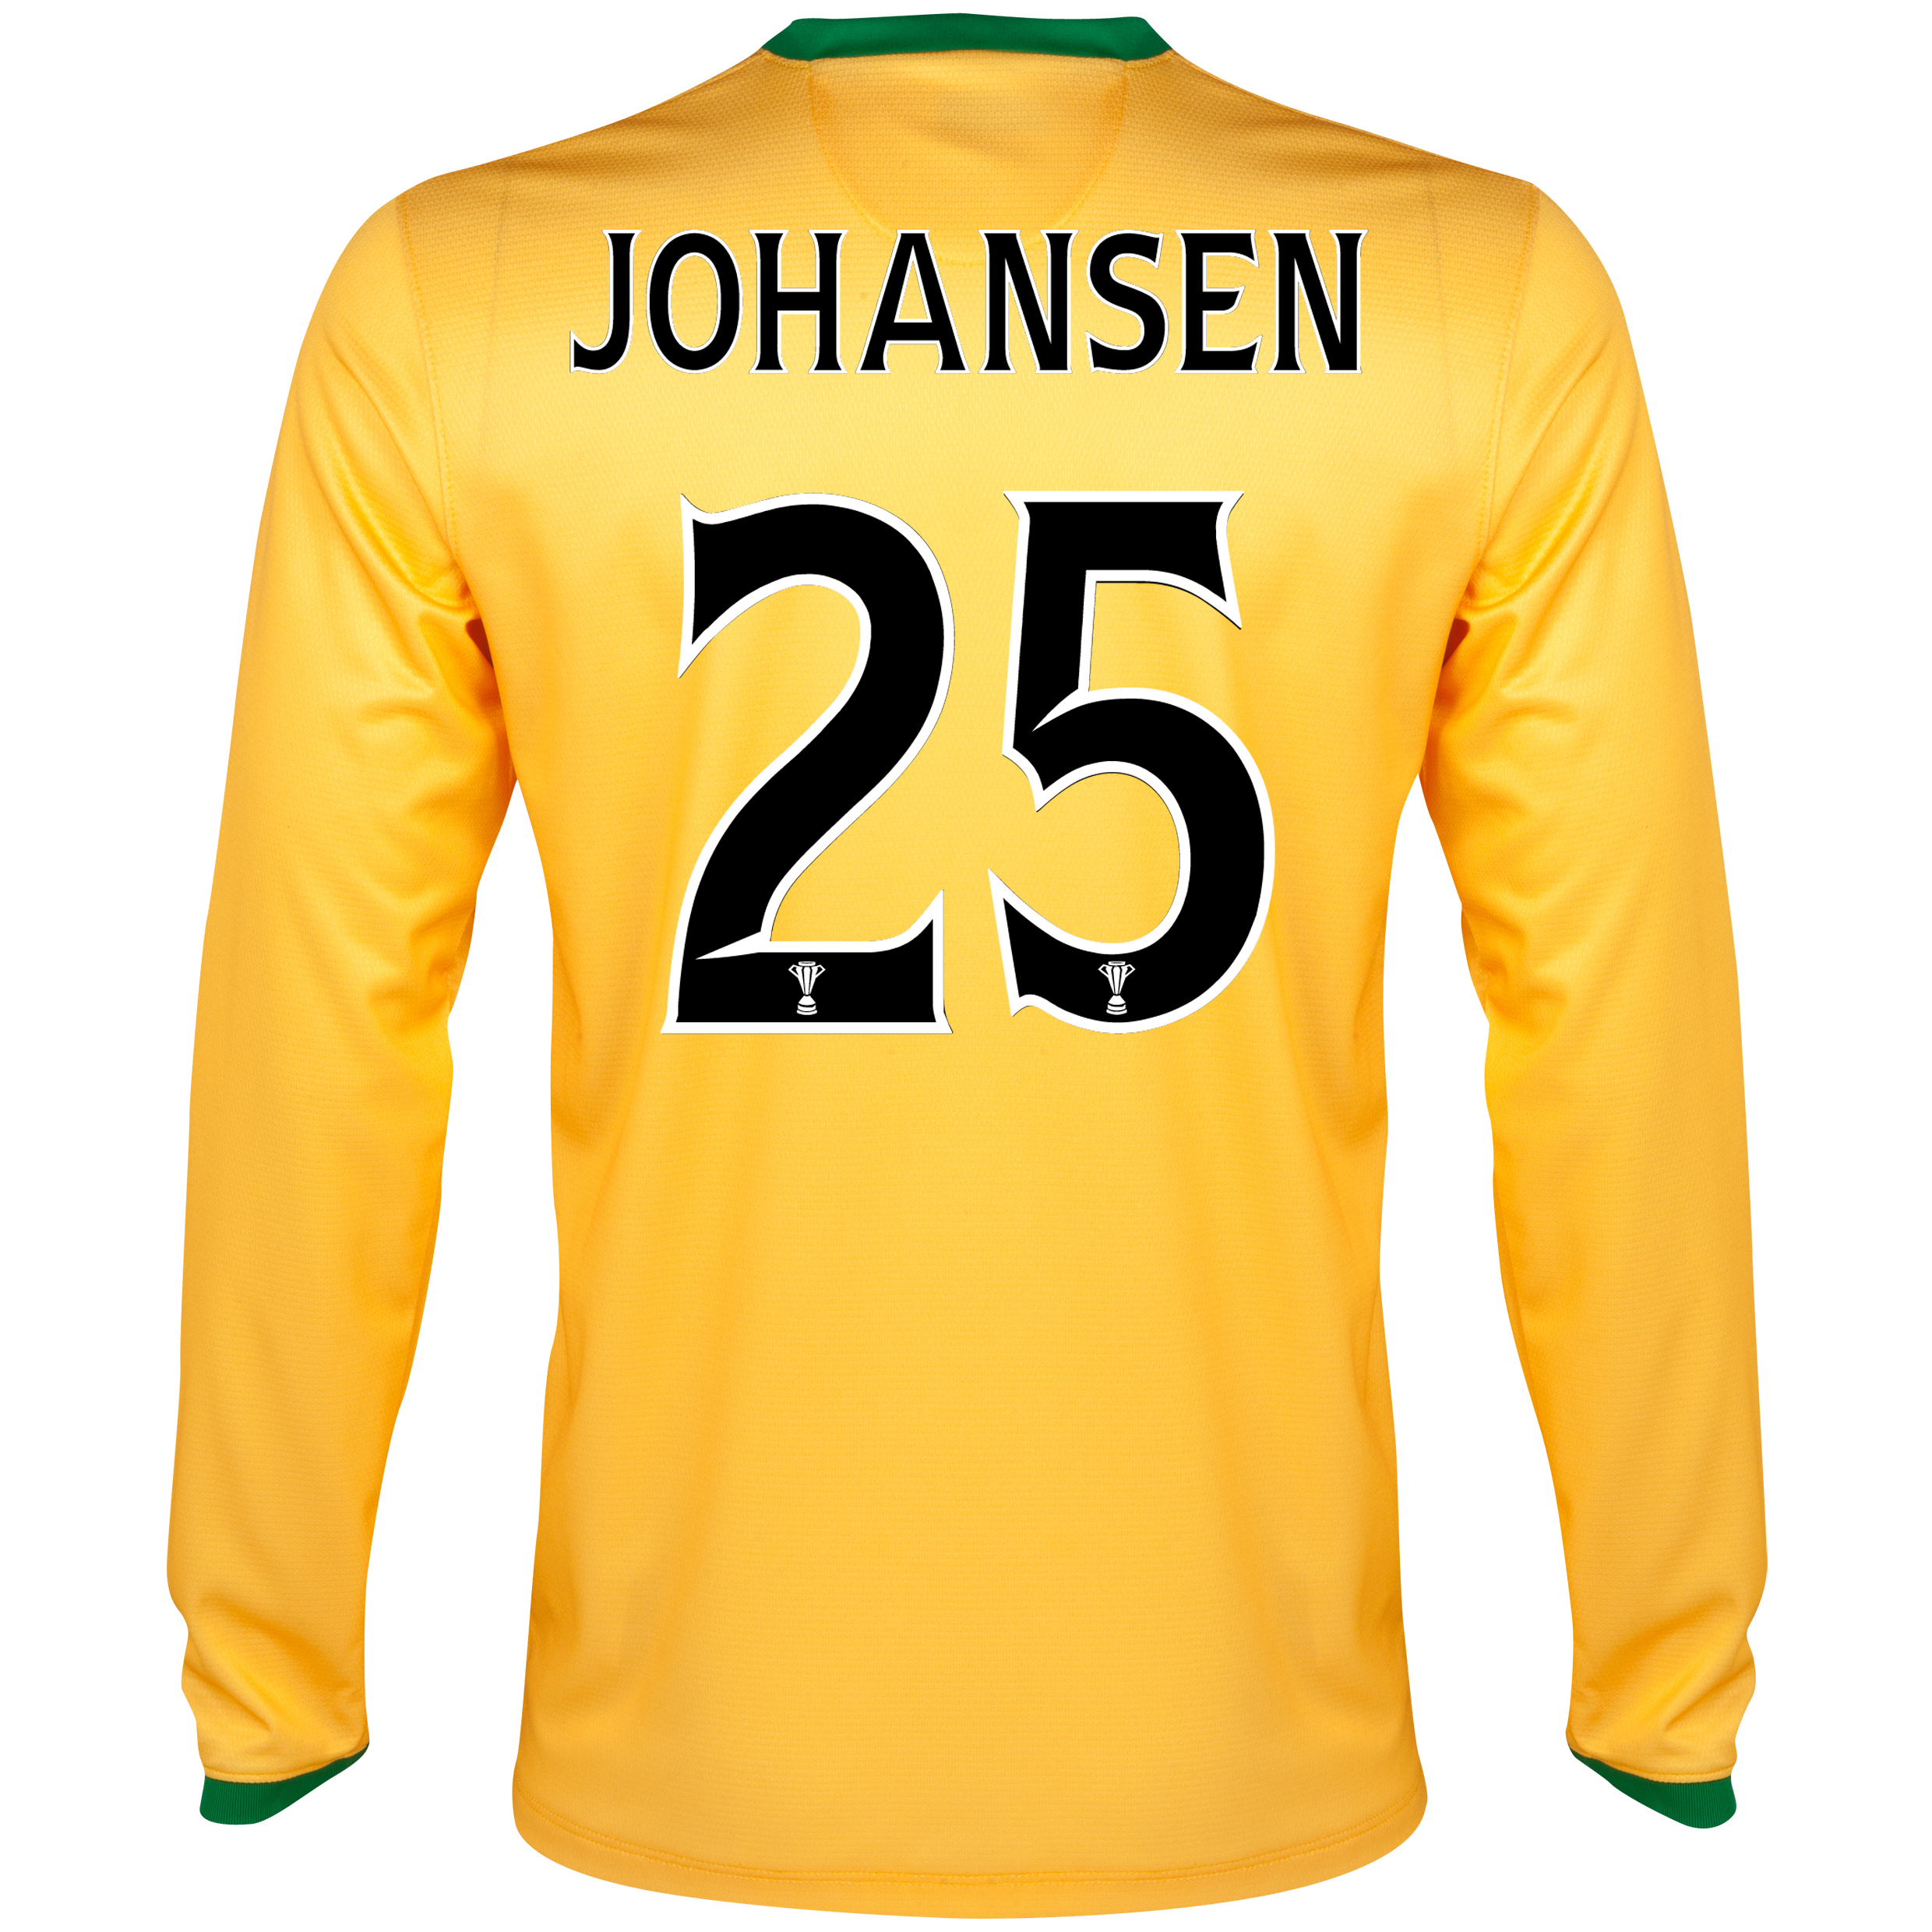 Celtic Away Shirt 2013/14 - L/S- Unsponsored with Johansen 25 printing